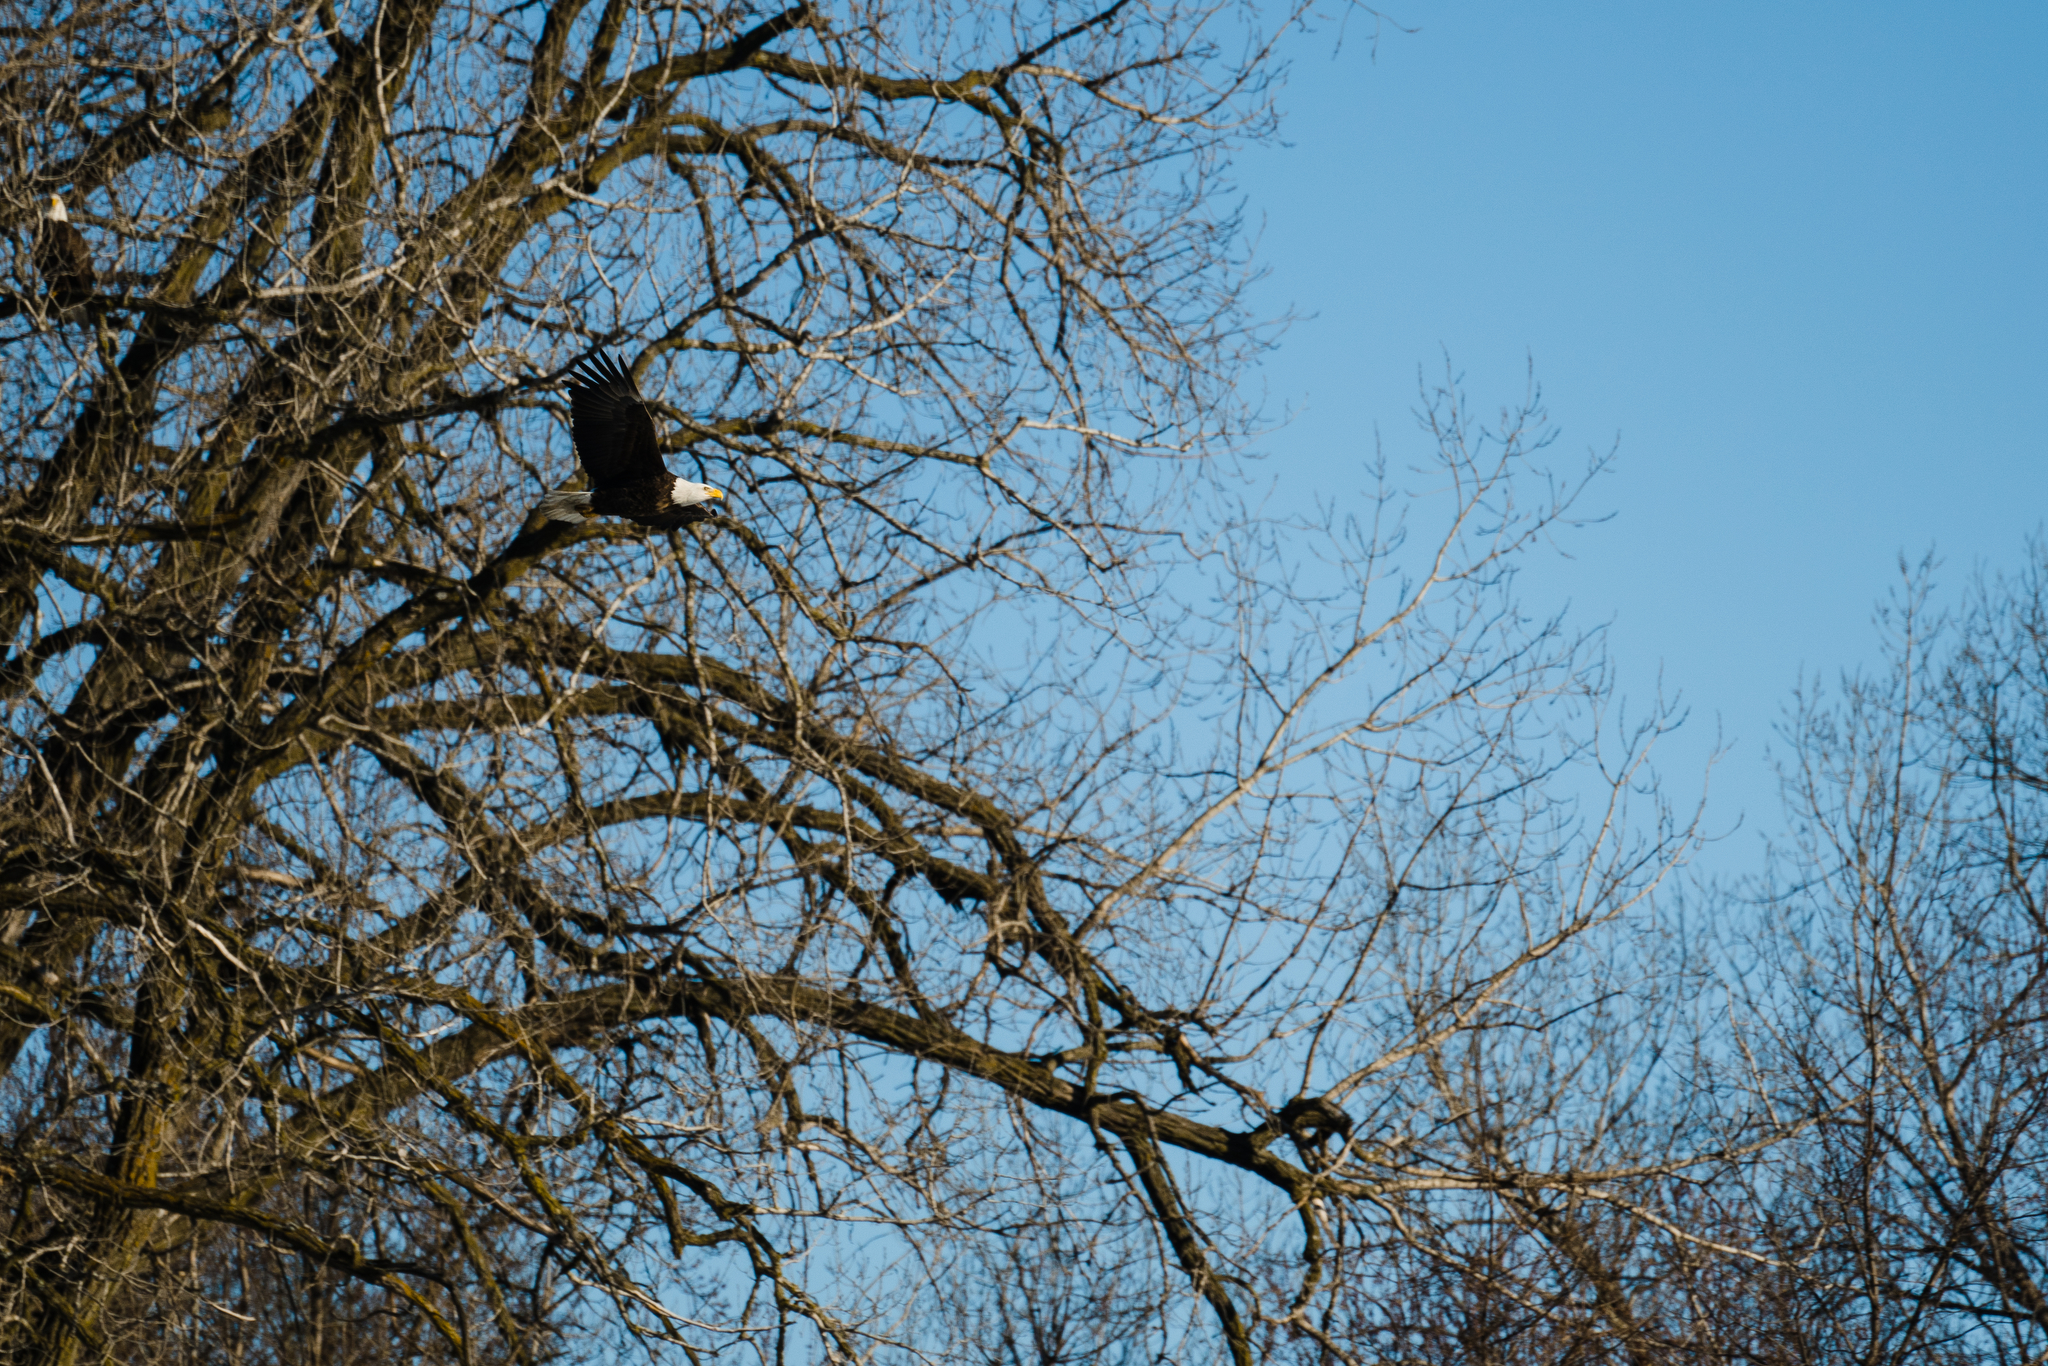 Where to see bald eagles in Minnesota